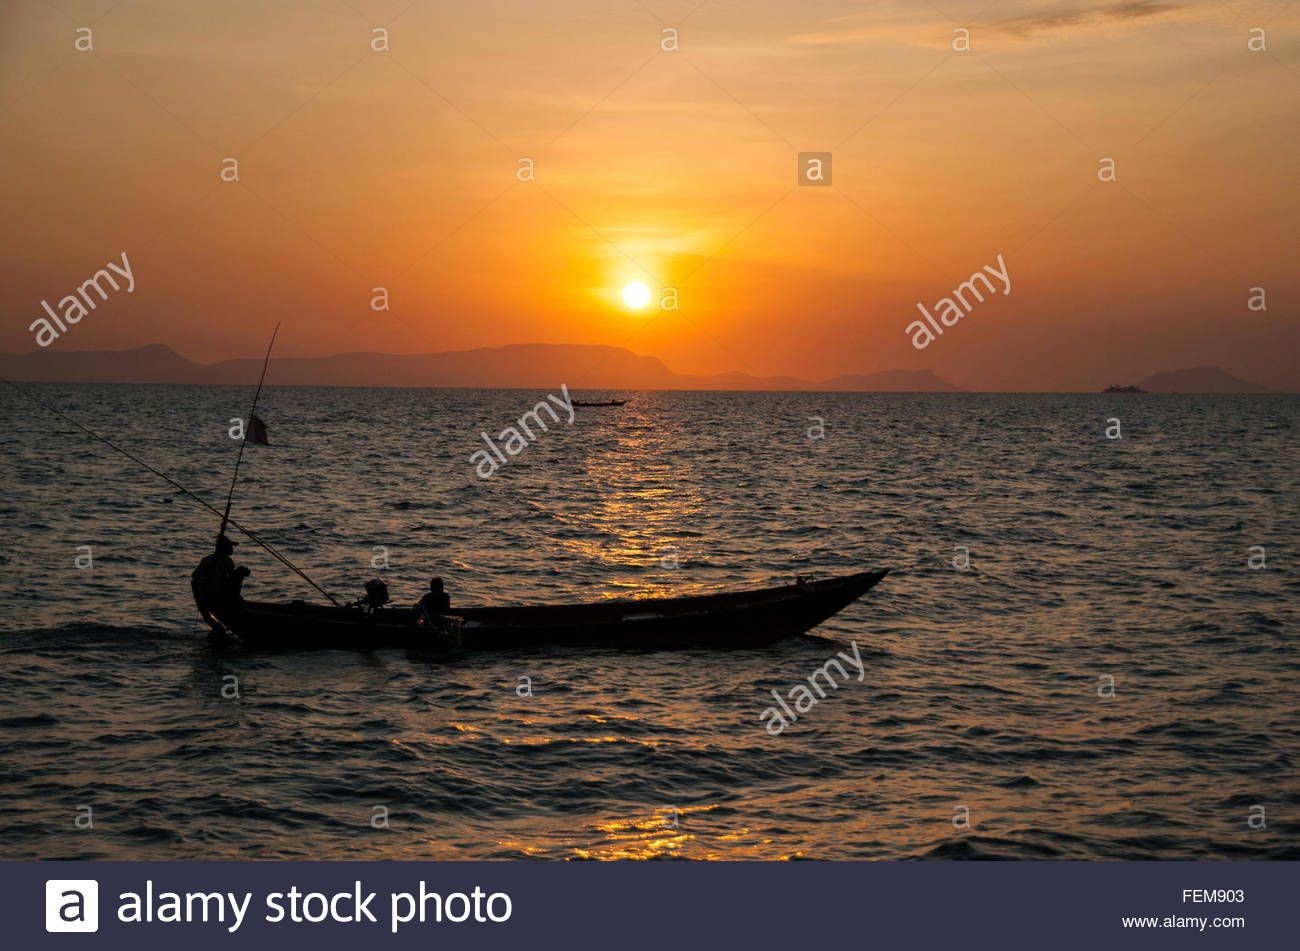 Two fishing boats silhouetted against the setting sun in the Gulf of Thailand off Kep, Cambodia, SE Asia Stock Photo